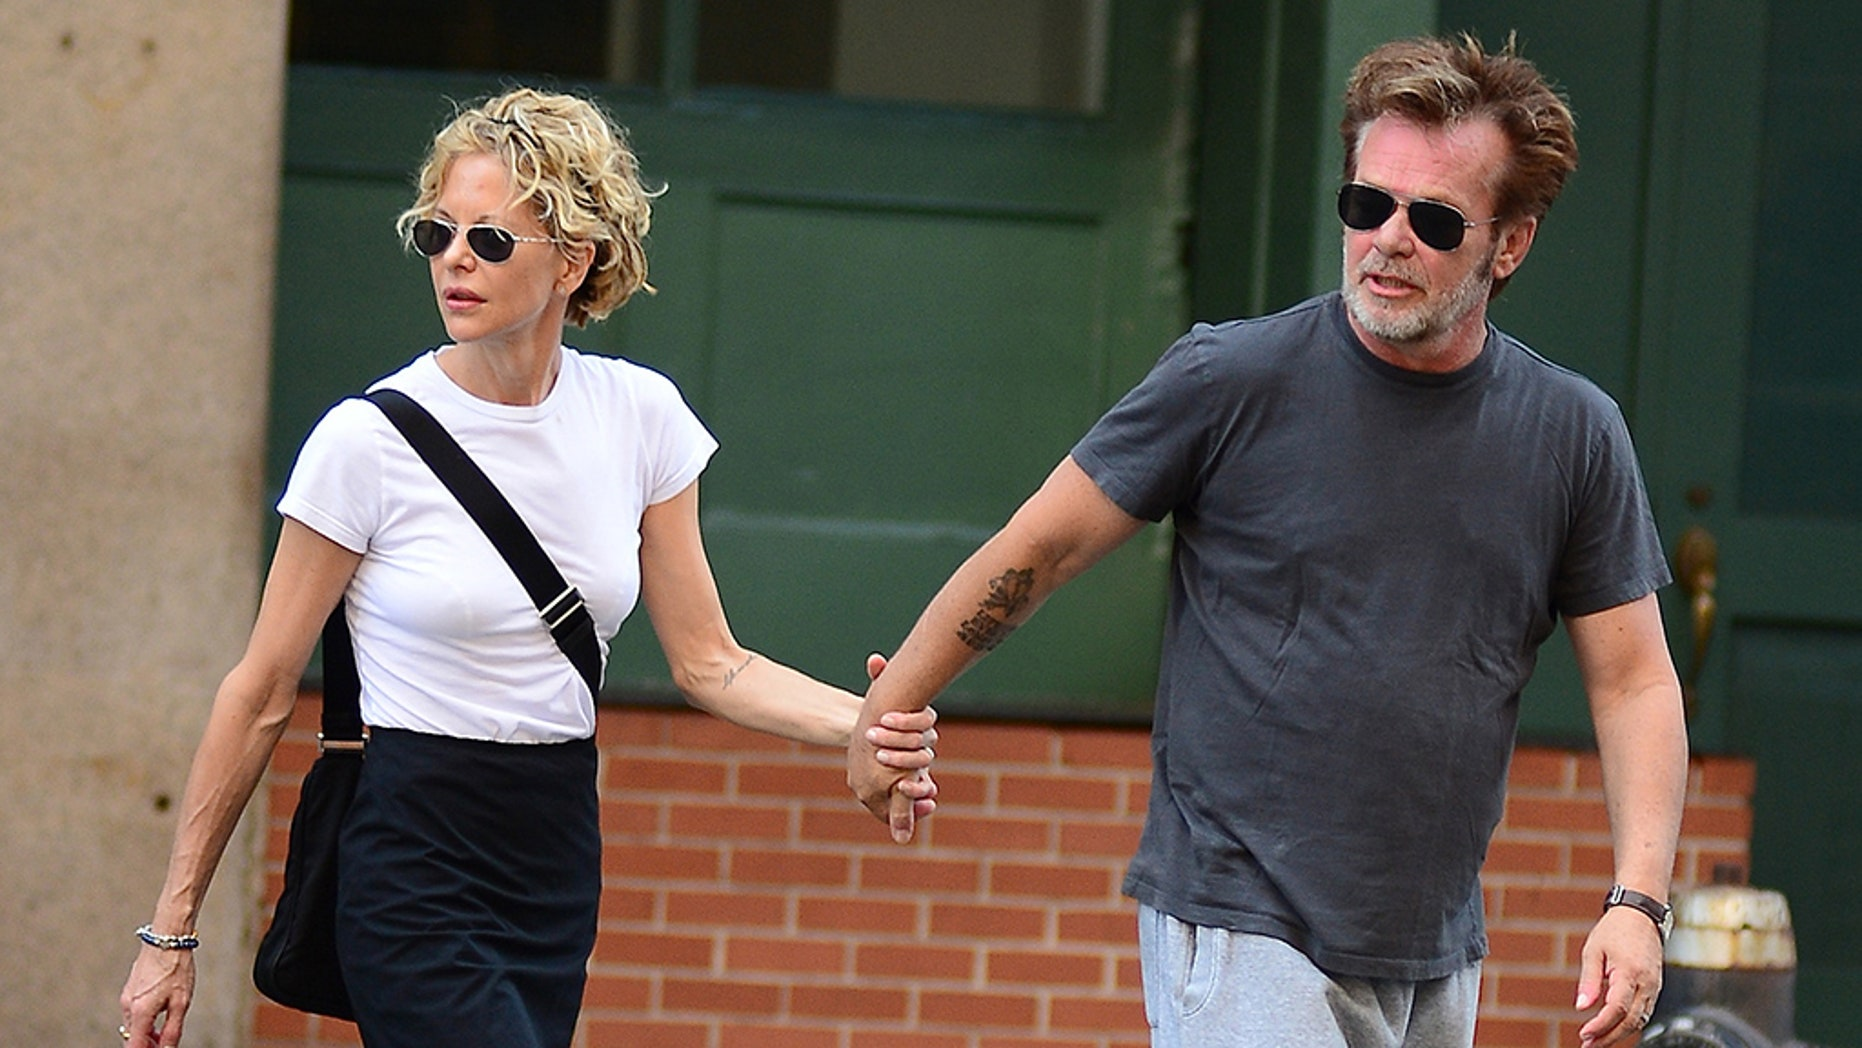 Meg Ryan Is Engaged to John Mellencamp - See Her Ring!